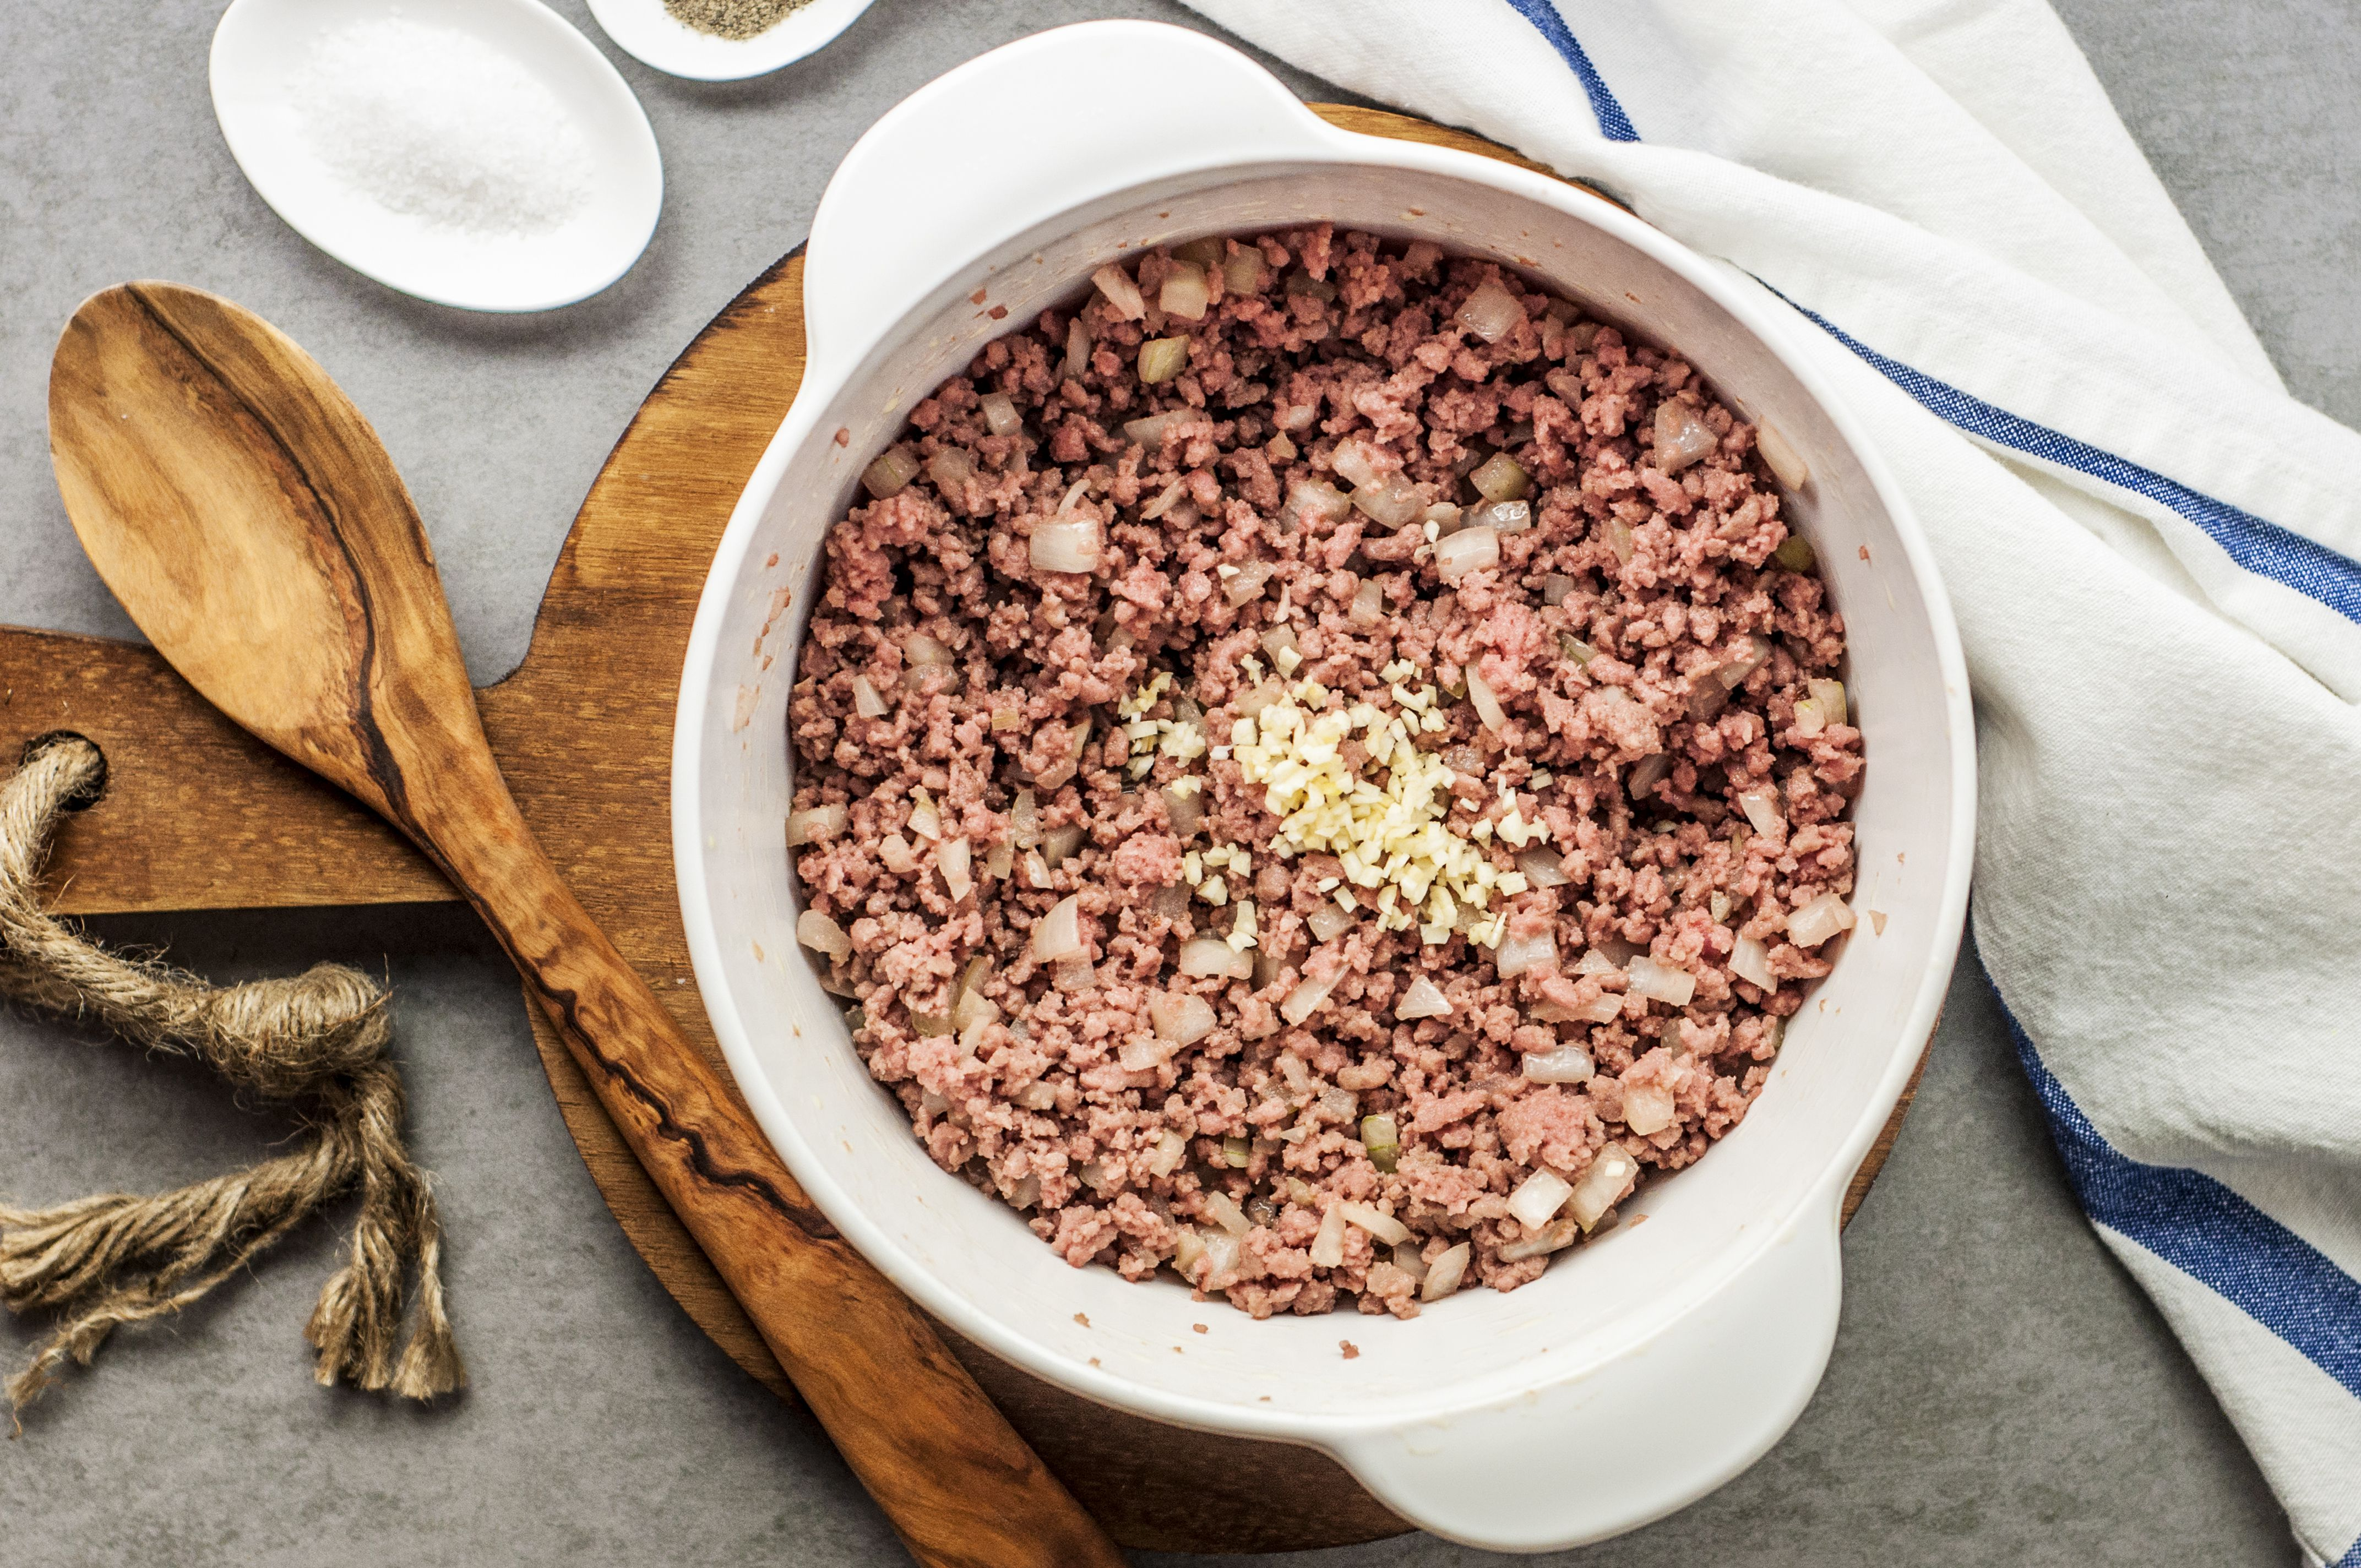 Cooked ground beef with garlic